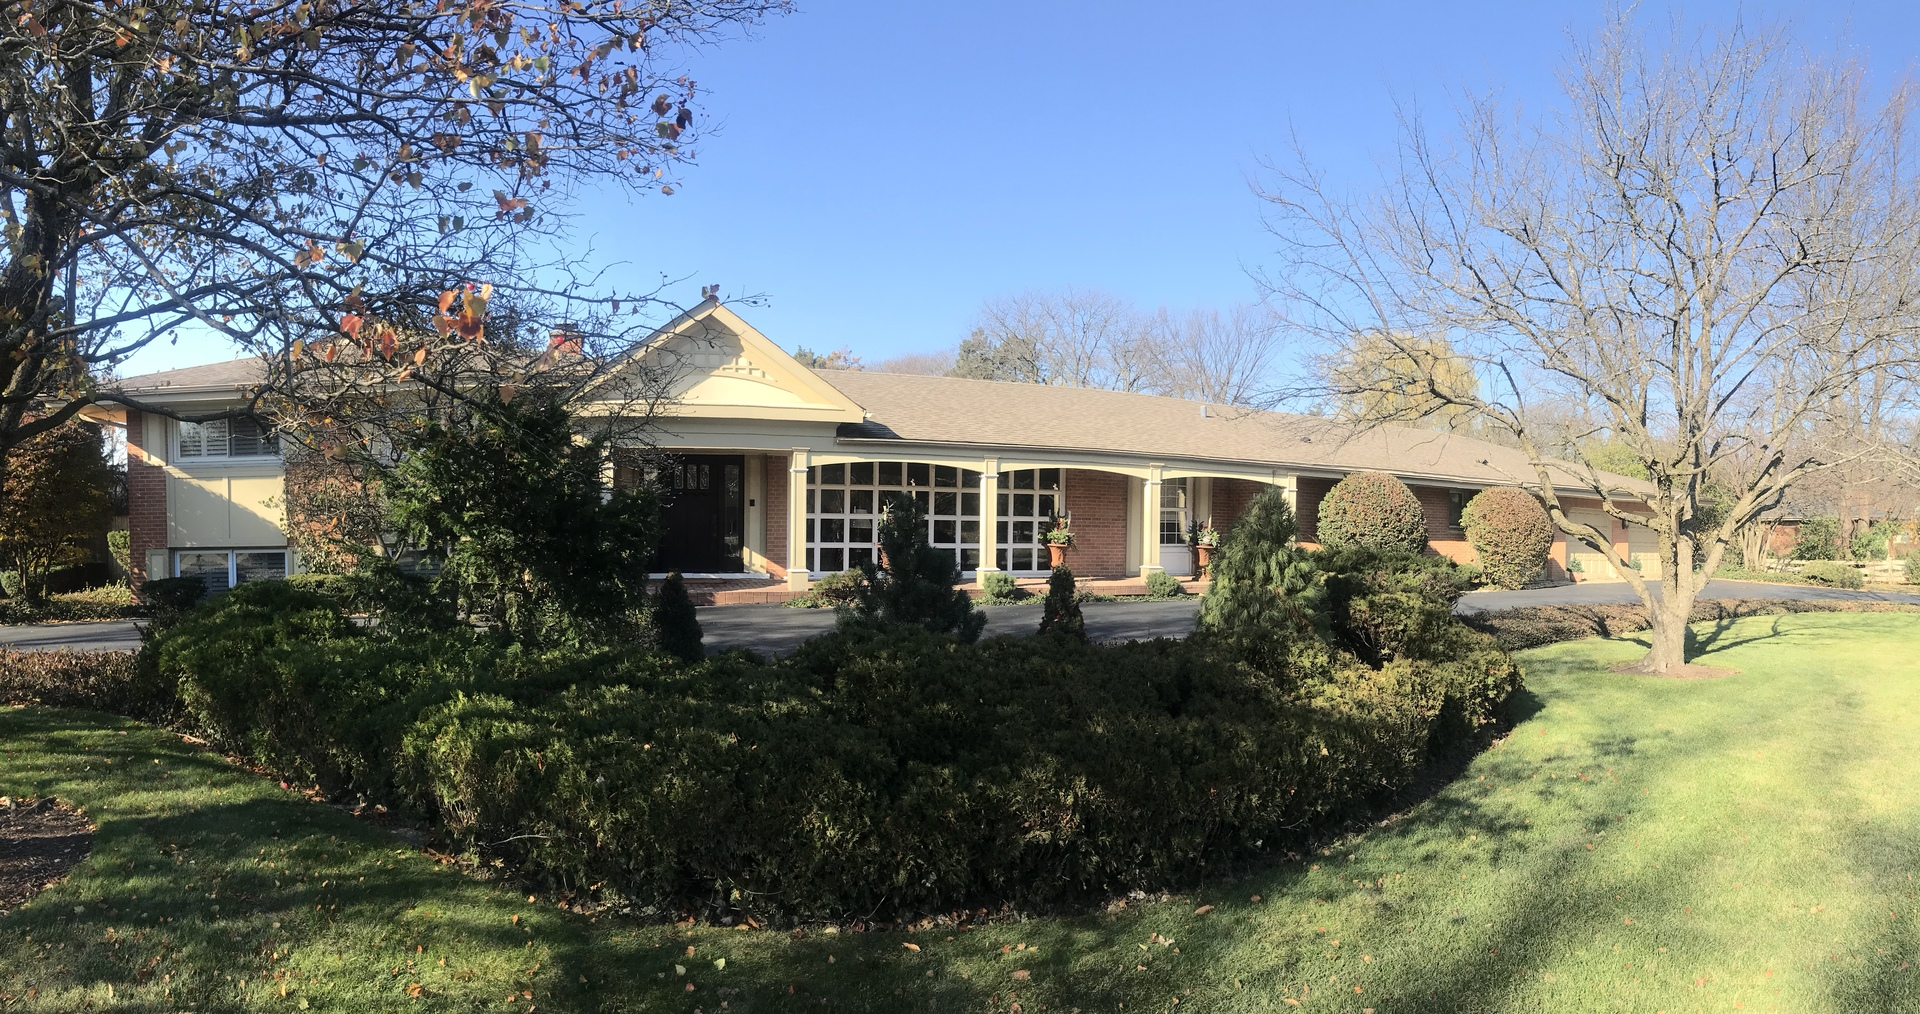 1900 Burr Oak Drive, Glenview in Cook County, IL 60025 Home for Sale